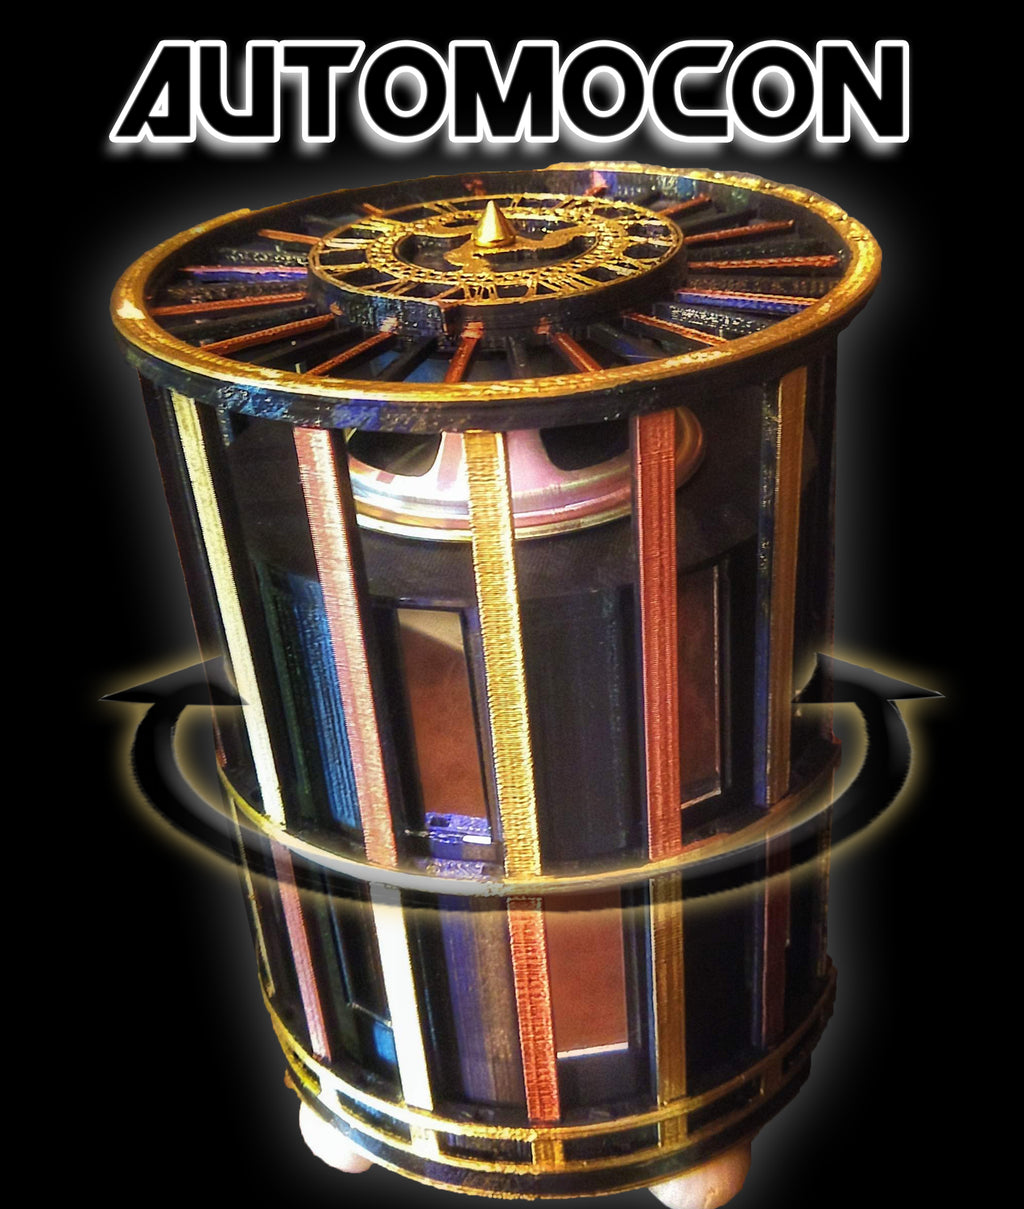 AUTOMOCON RANDOM SWEEP SCRYING MIRROR  ITC SPIRIT/GHOST BOX